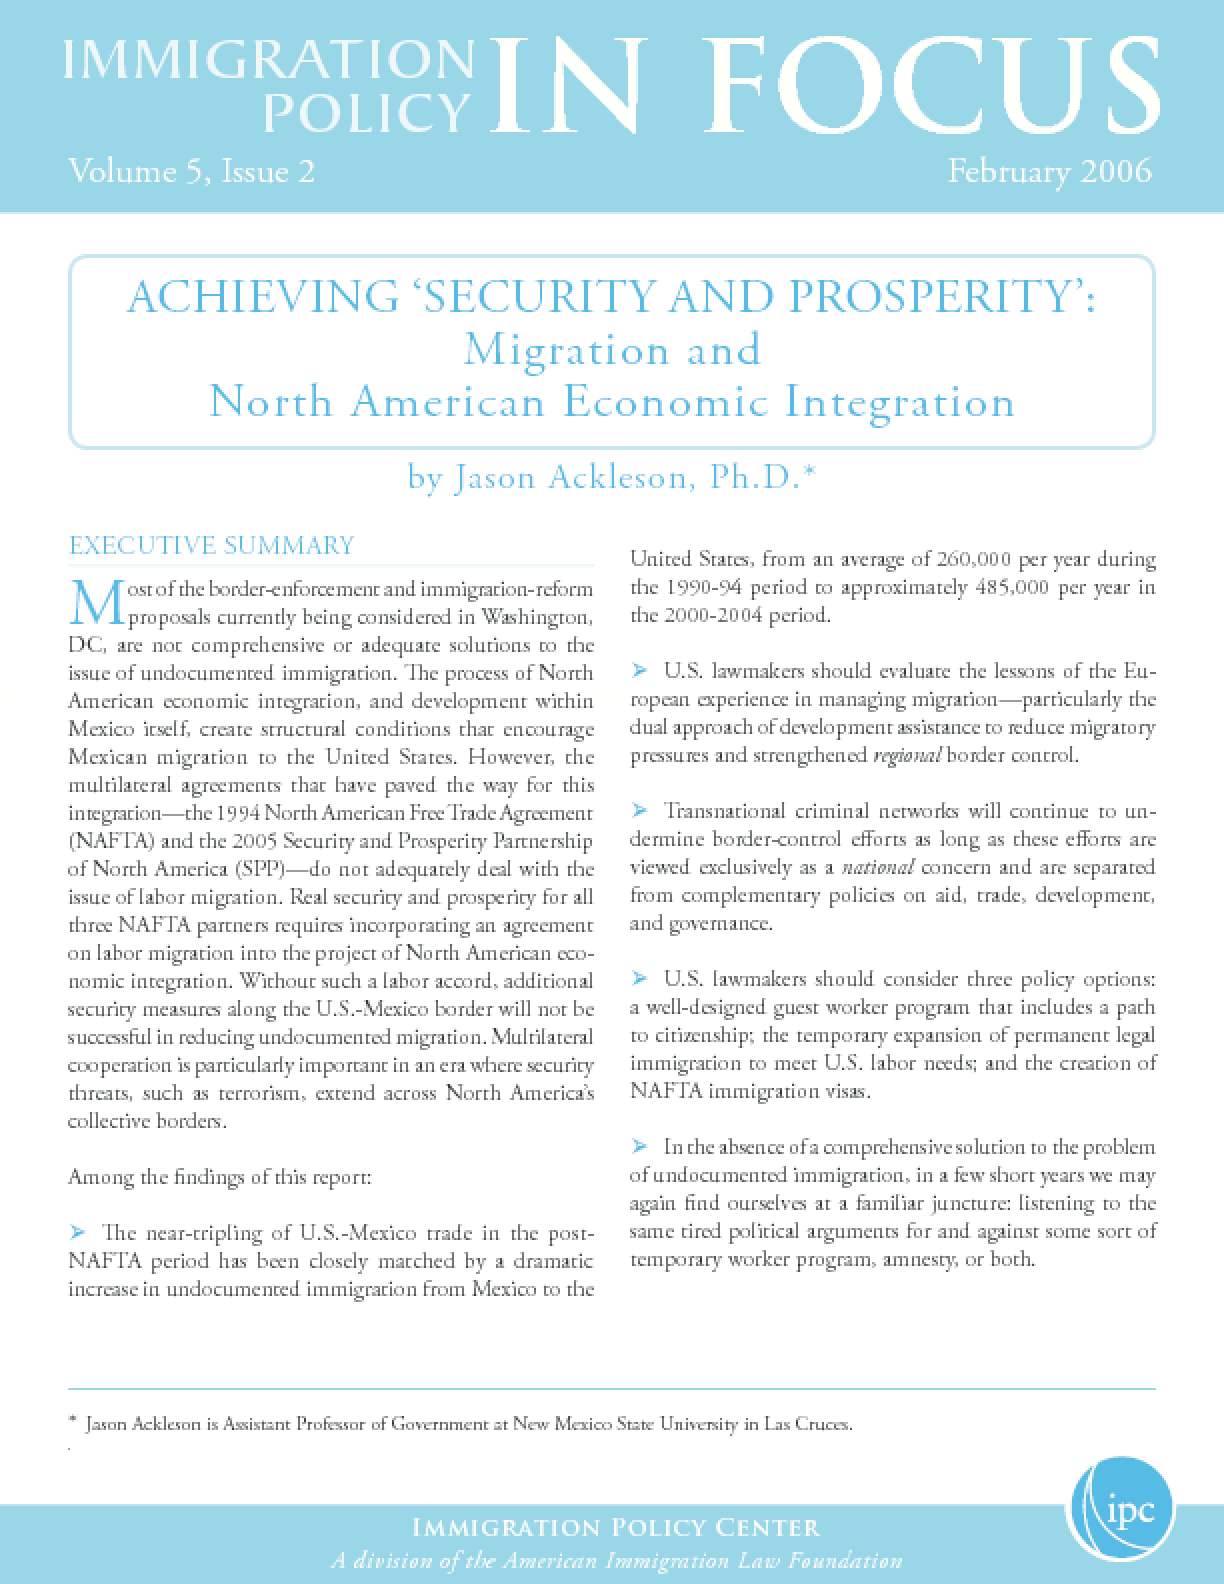 Achieving 'Security and Prosperity': Migration and North American Economic Integration